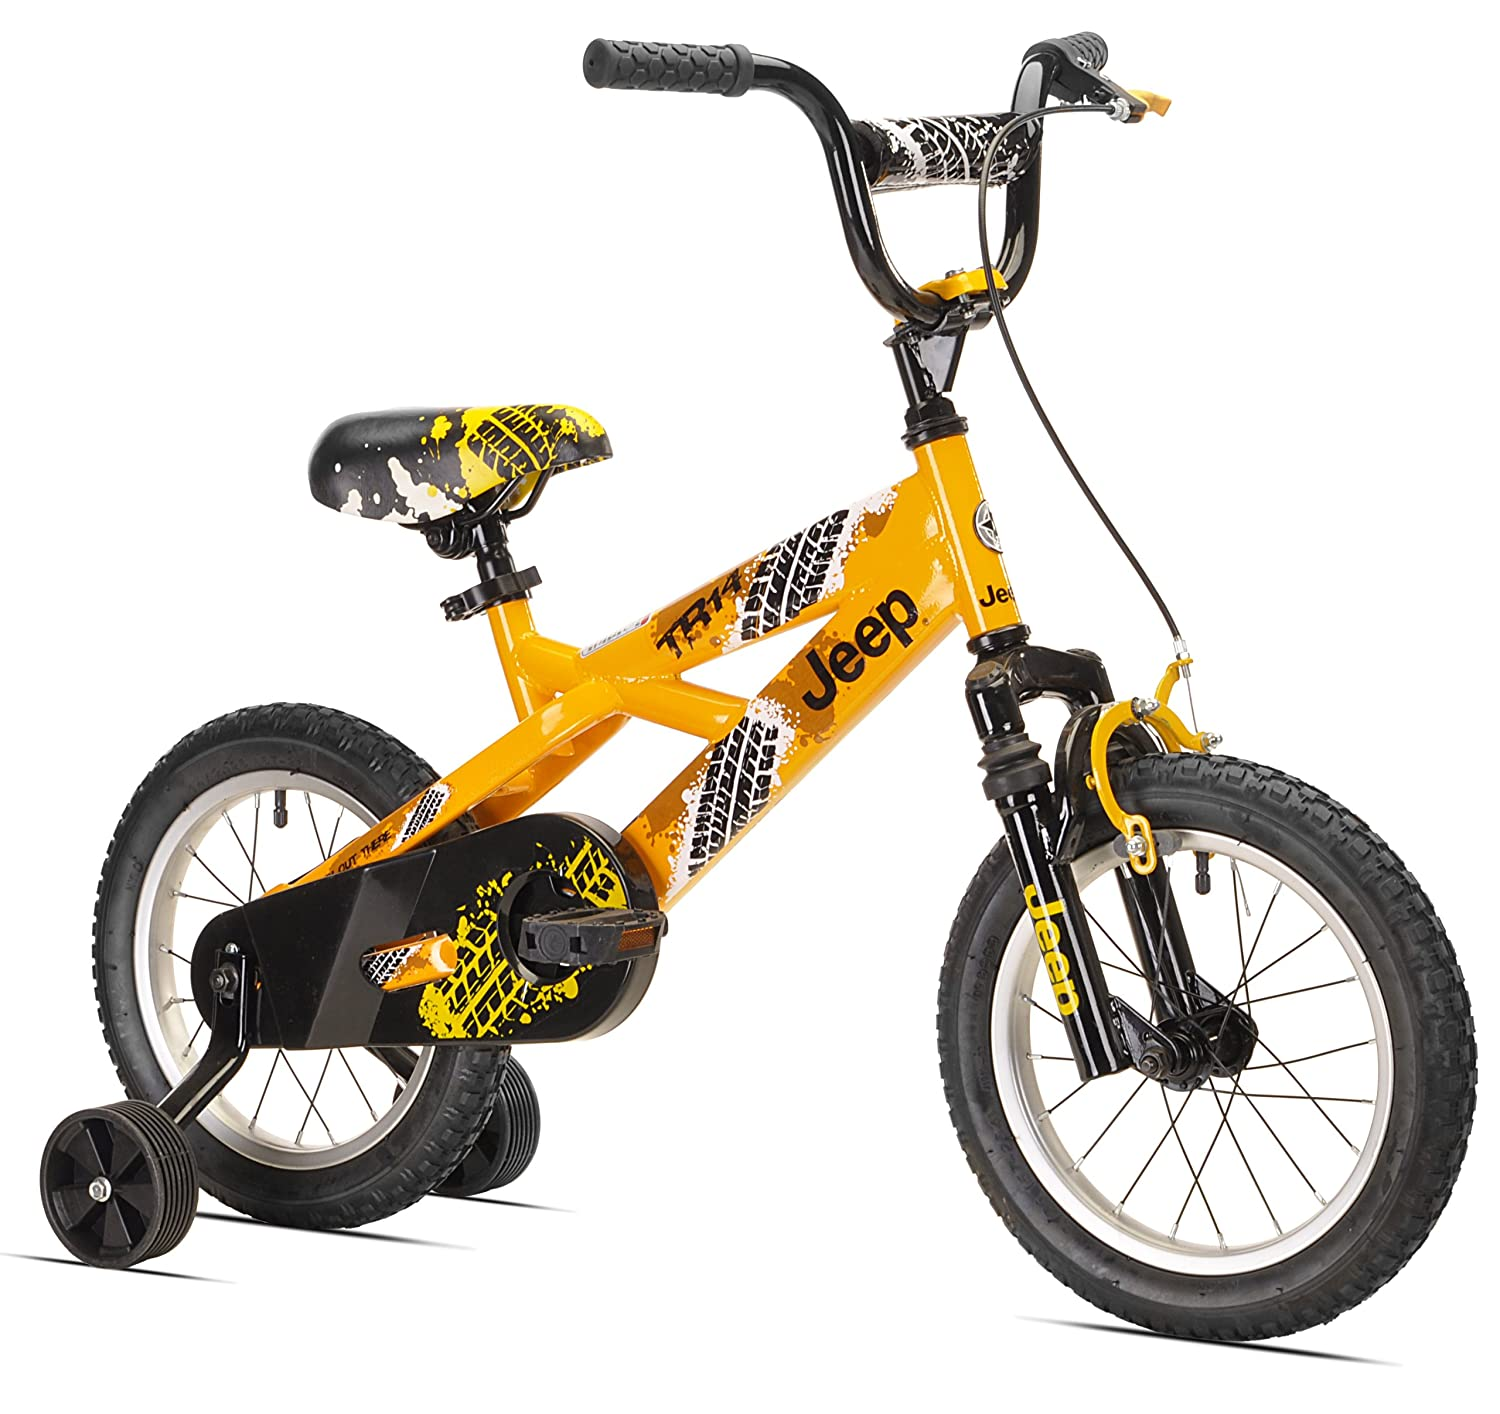 Cheap Boys Bikes 16 Inch Jeep Boy s Bike Inch